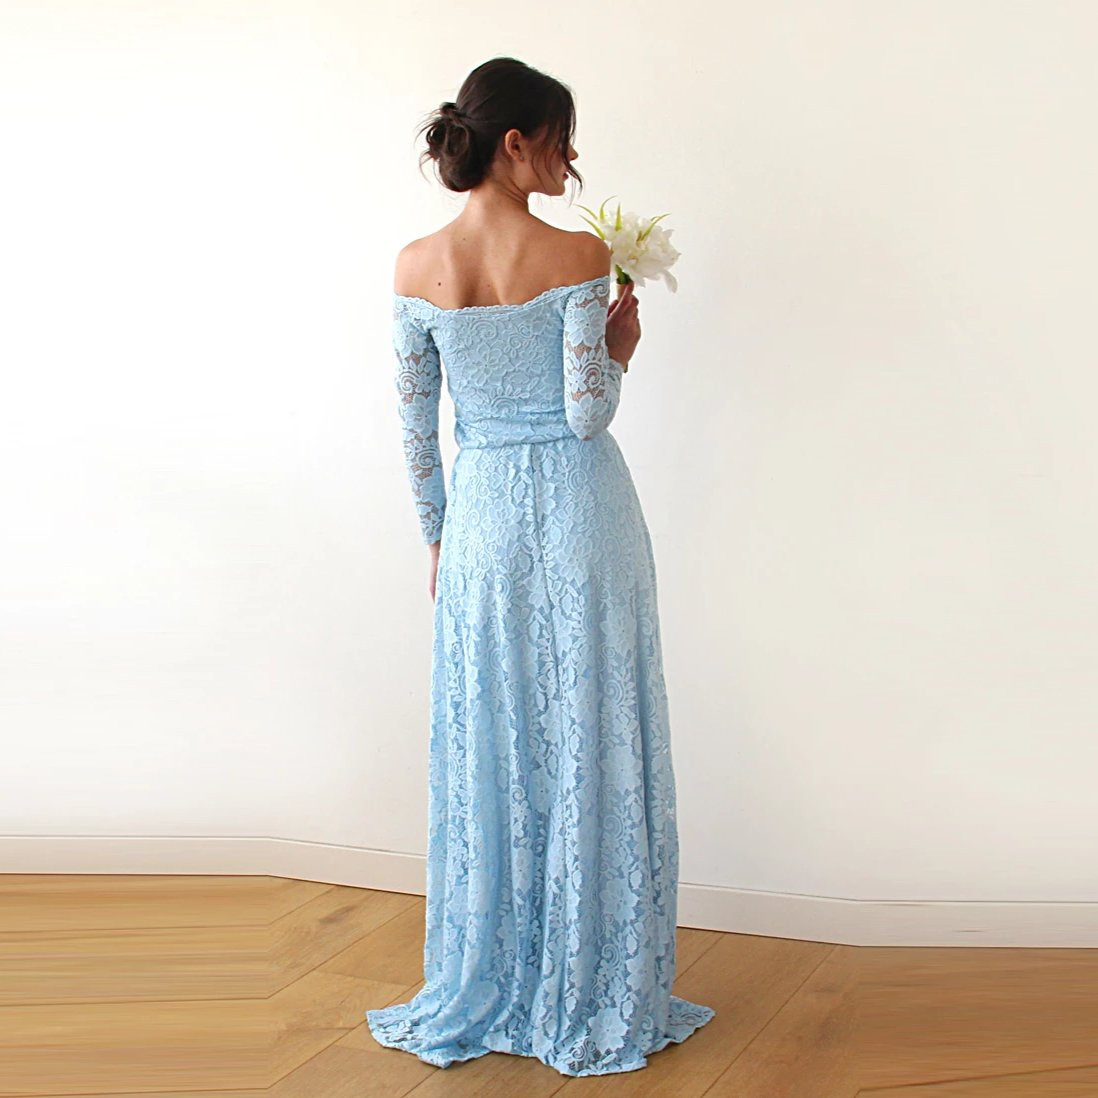 Light Blue Off-The-Shoulder Floral Lace Long Sleeve Maxi Dress 1119 - Blushfashion